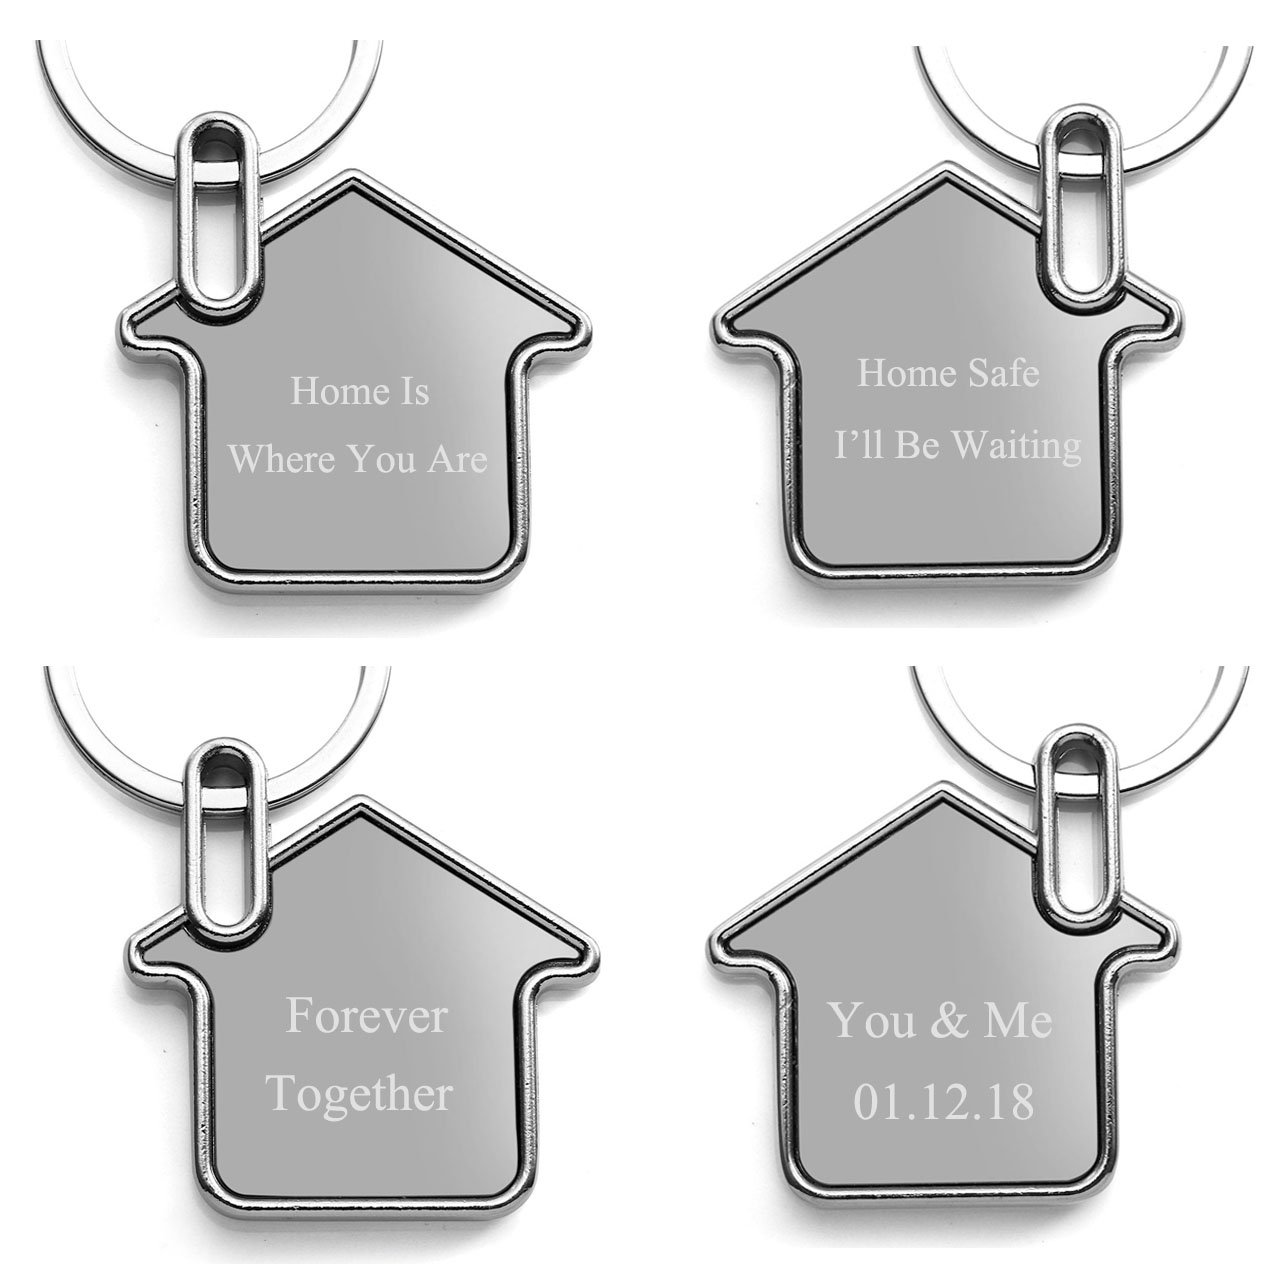 JSDDE Personalized Solid Alloy Dog Tag Keyring, Customized Engraved Keychain - Enter Your Custom Text, Fathers Day Gift(House)